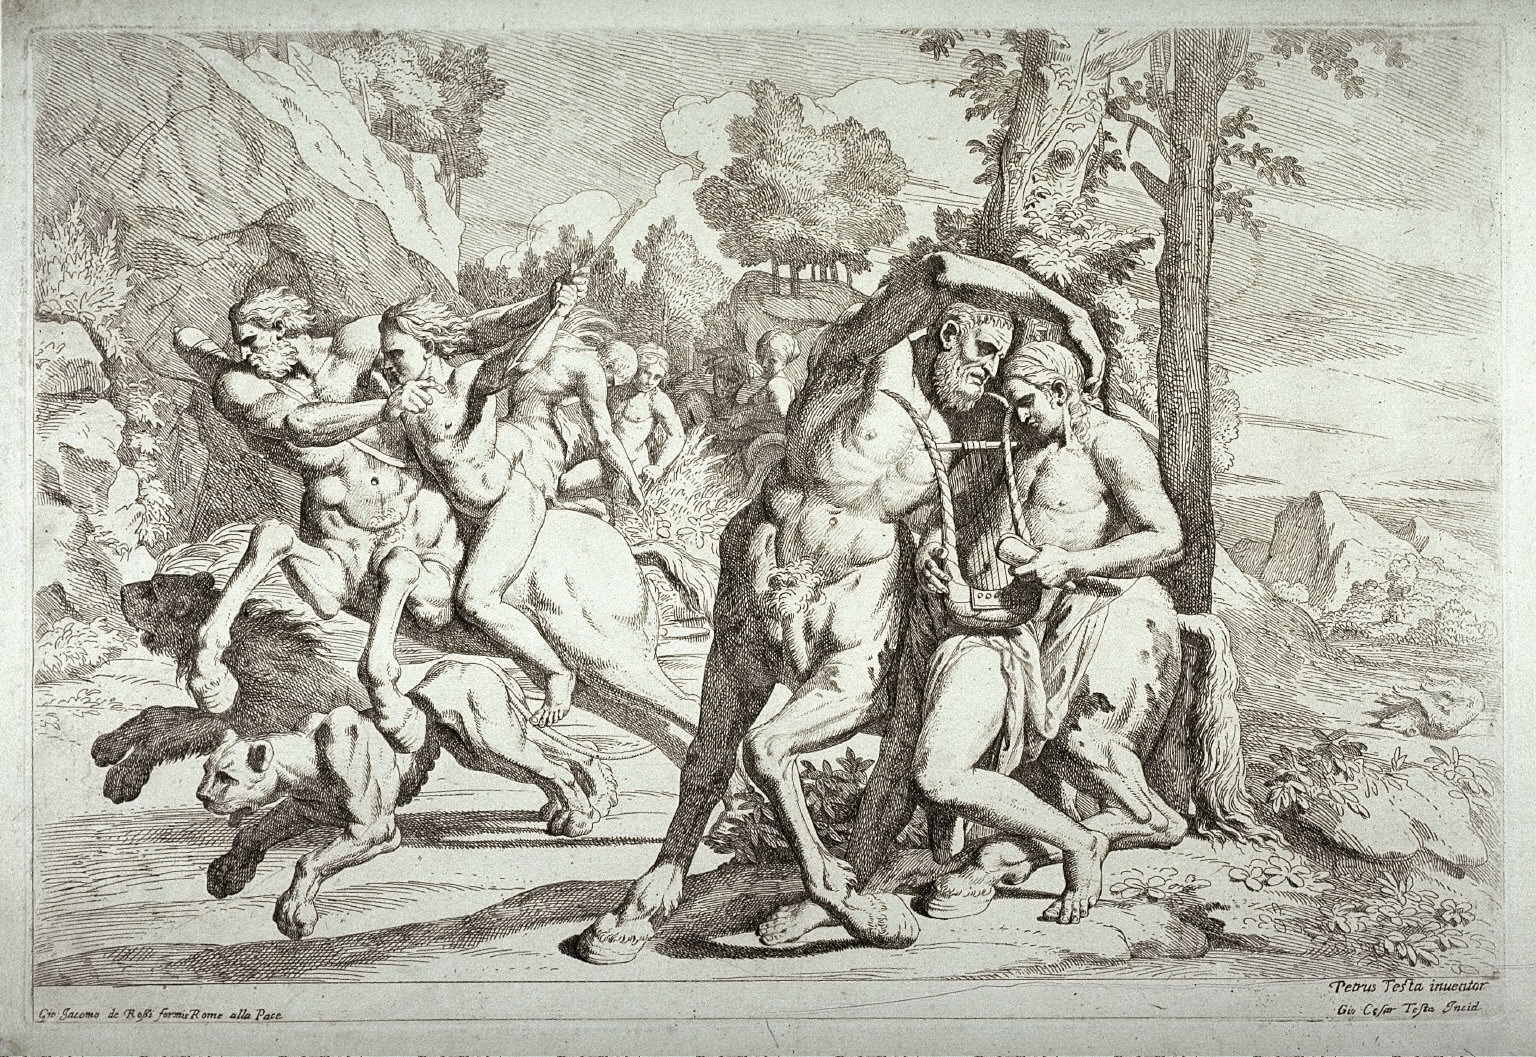 Achilles on the back of the Centaur Chiron